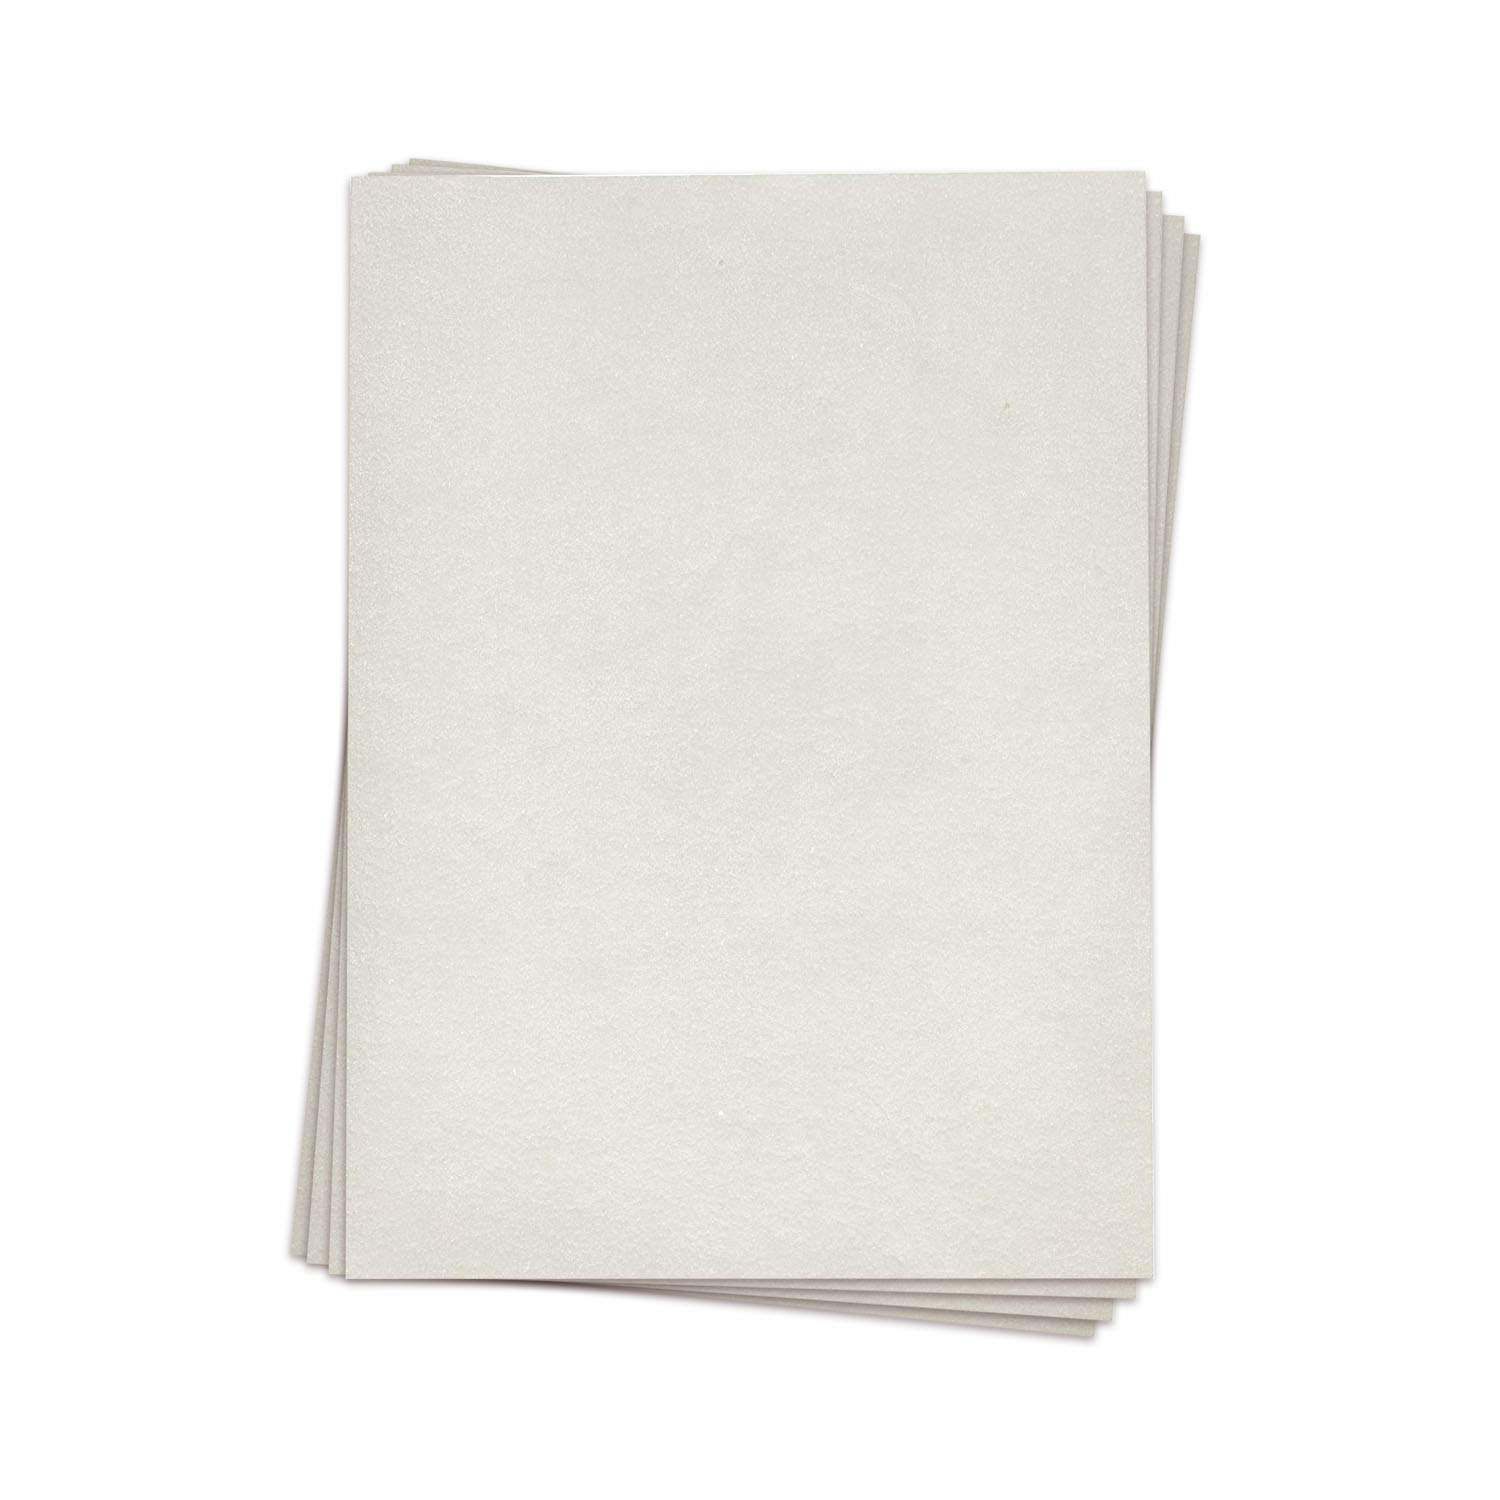 Ultra Flexible Icing Sheets White Paper 8.5